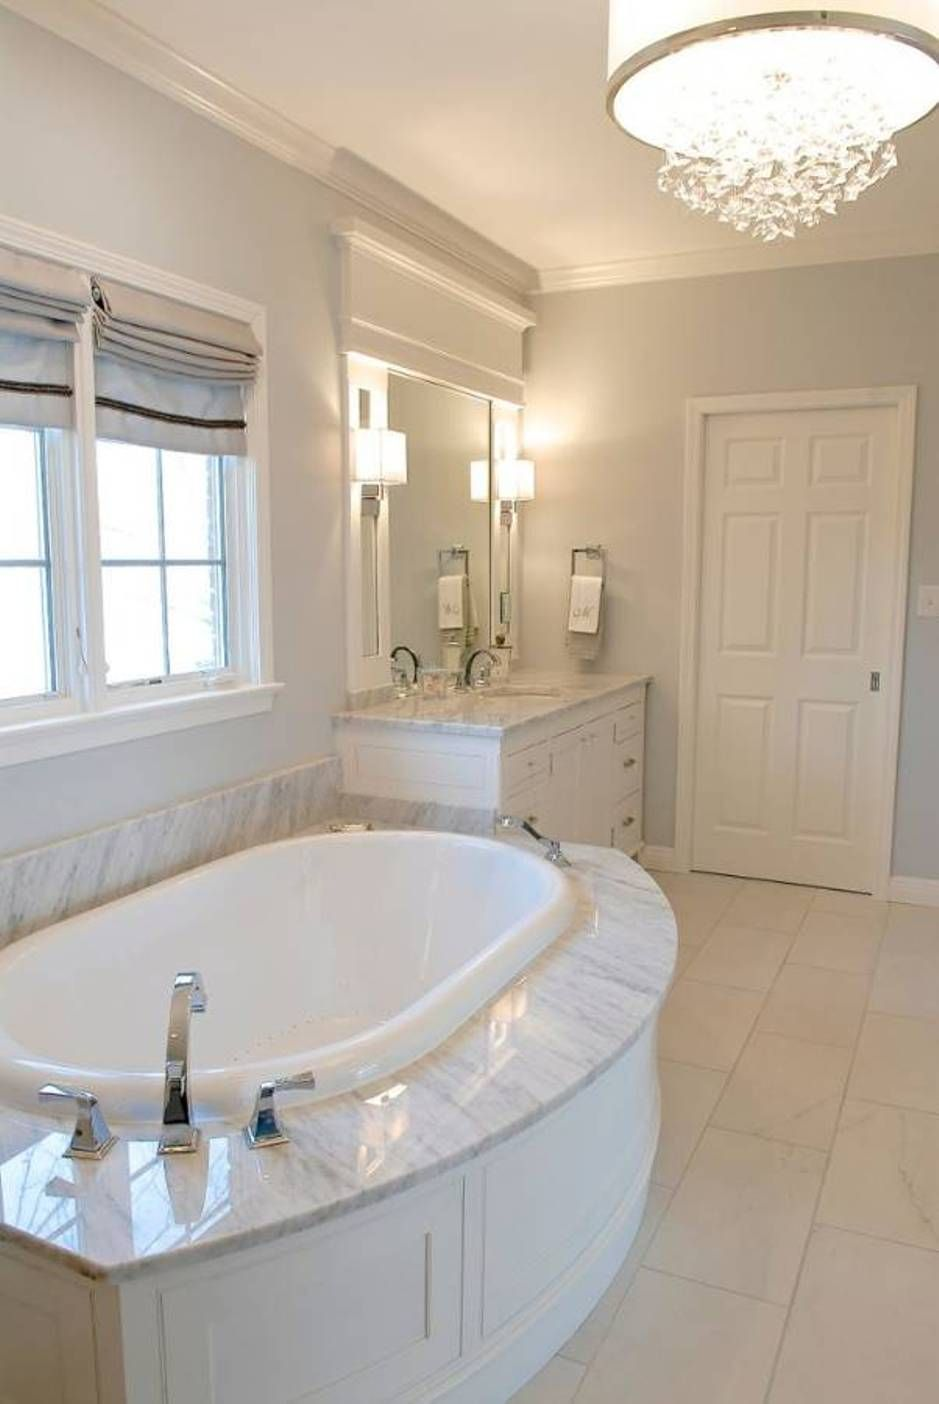 Bathroom With Whirlpool Tubs And Pale Wall Colors Bathroom Whirlpool ...